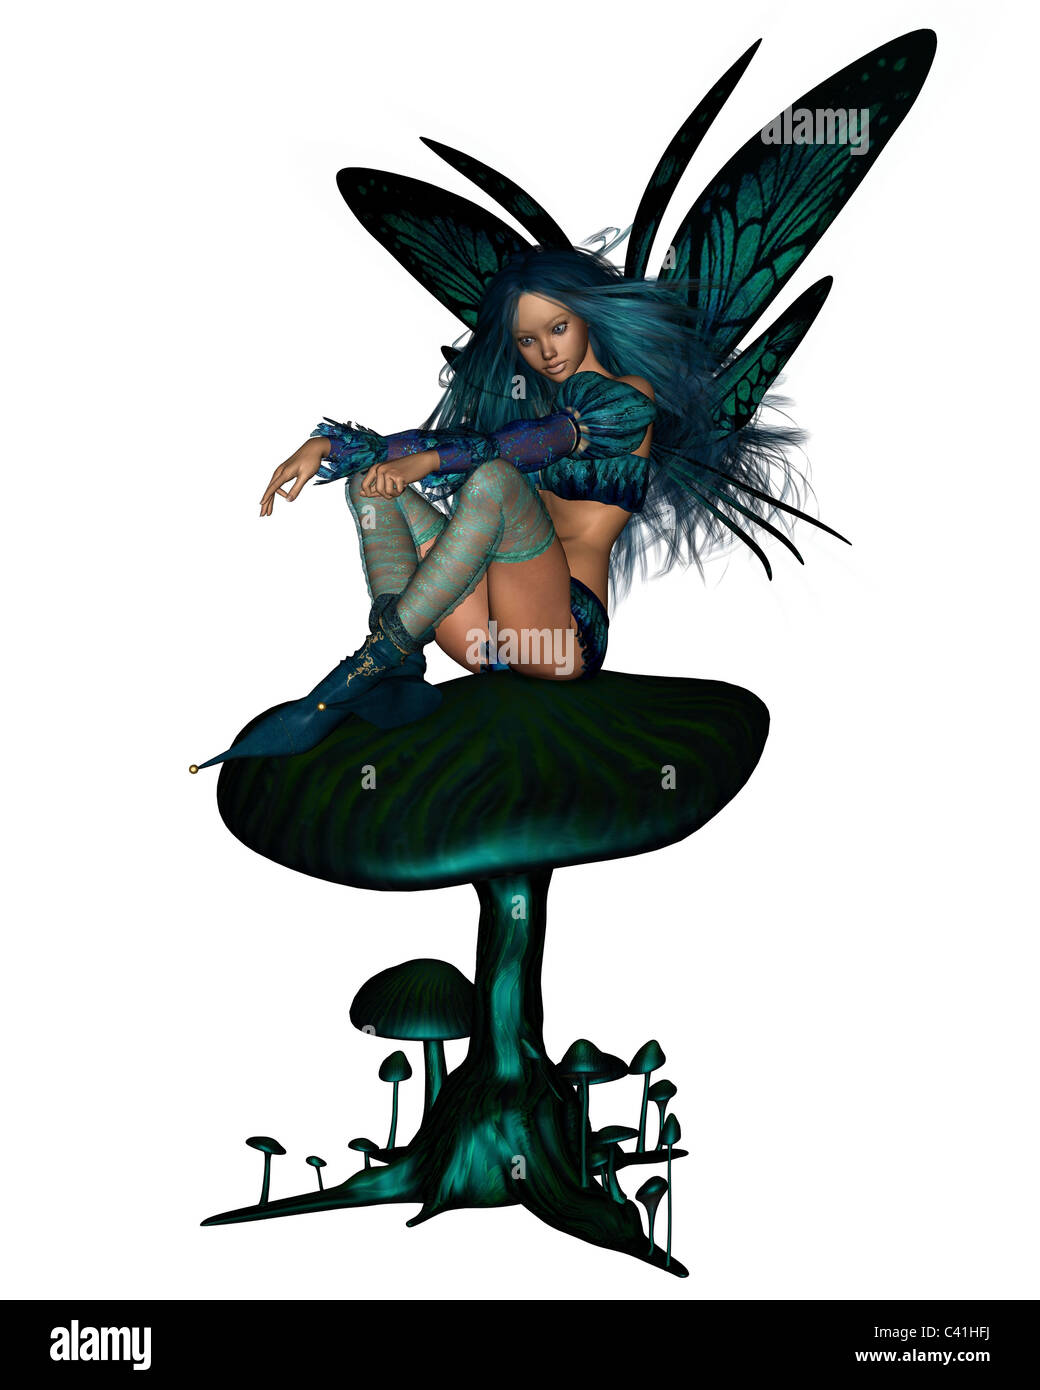 Turquoise Fairy Sitting on a Toadstool - Stock Image